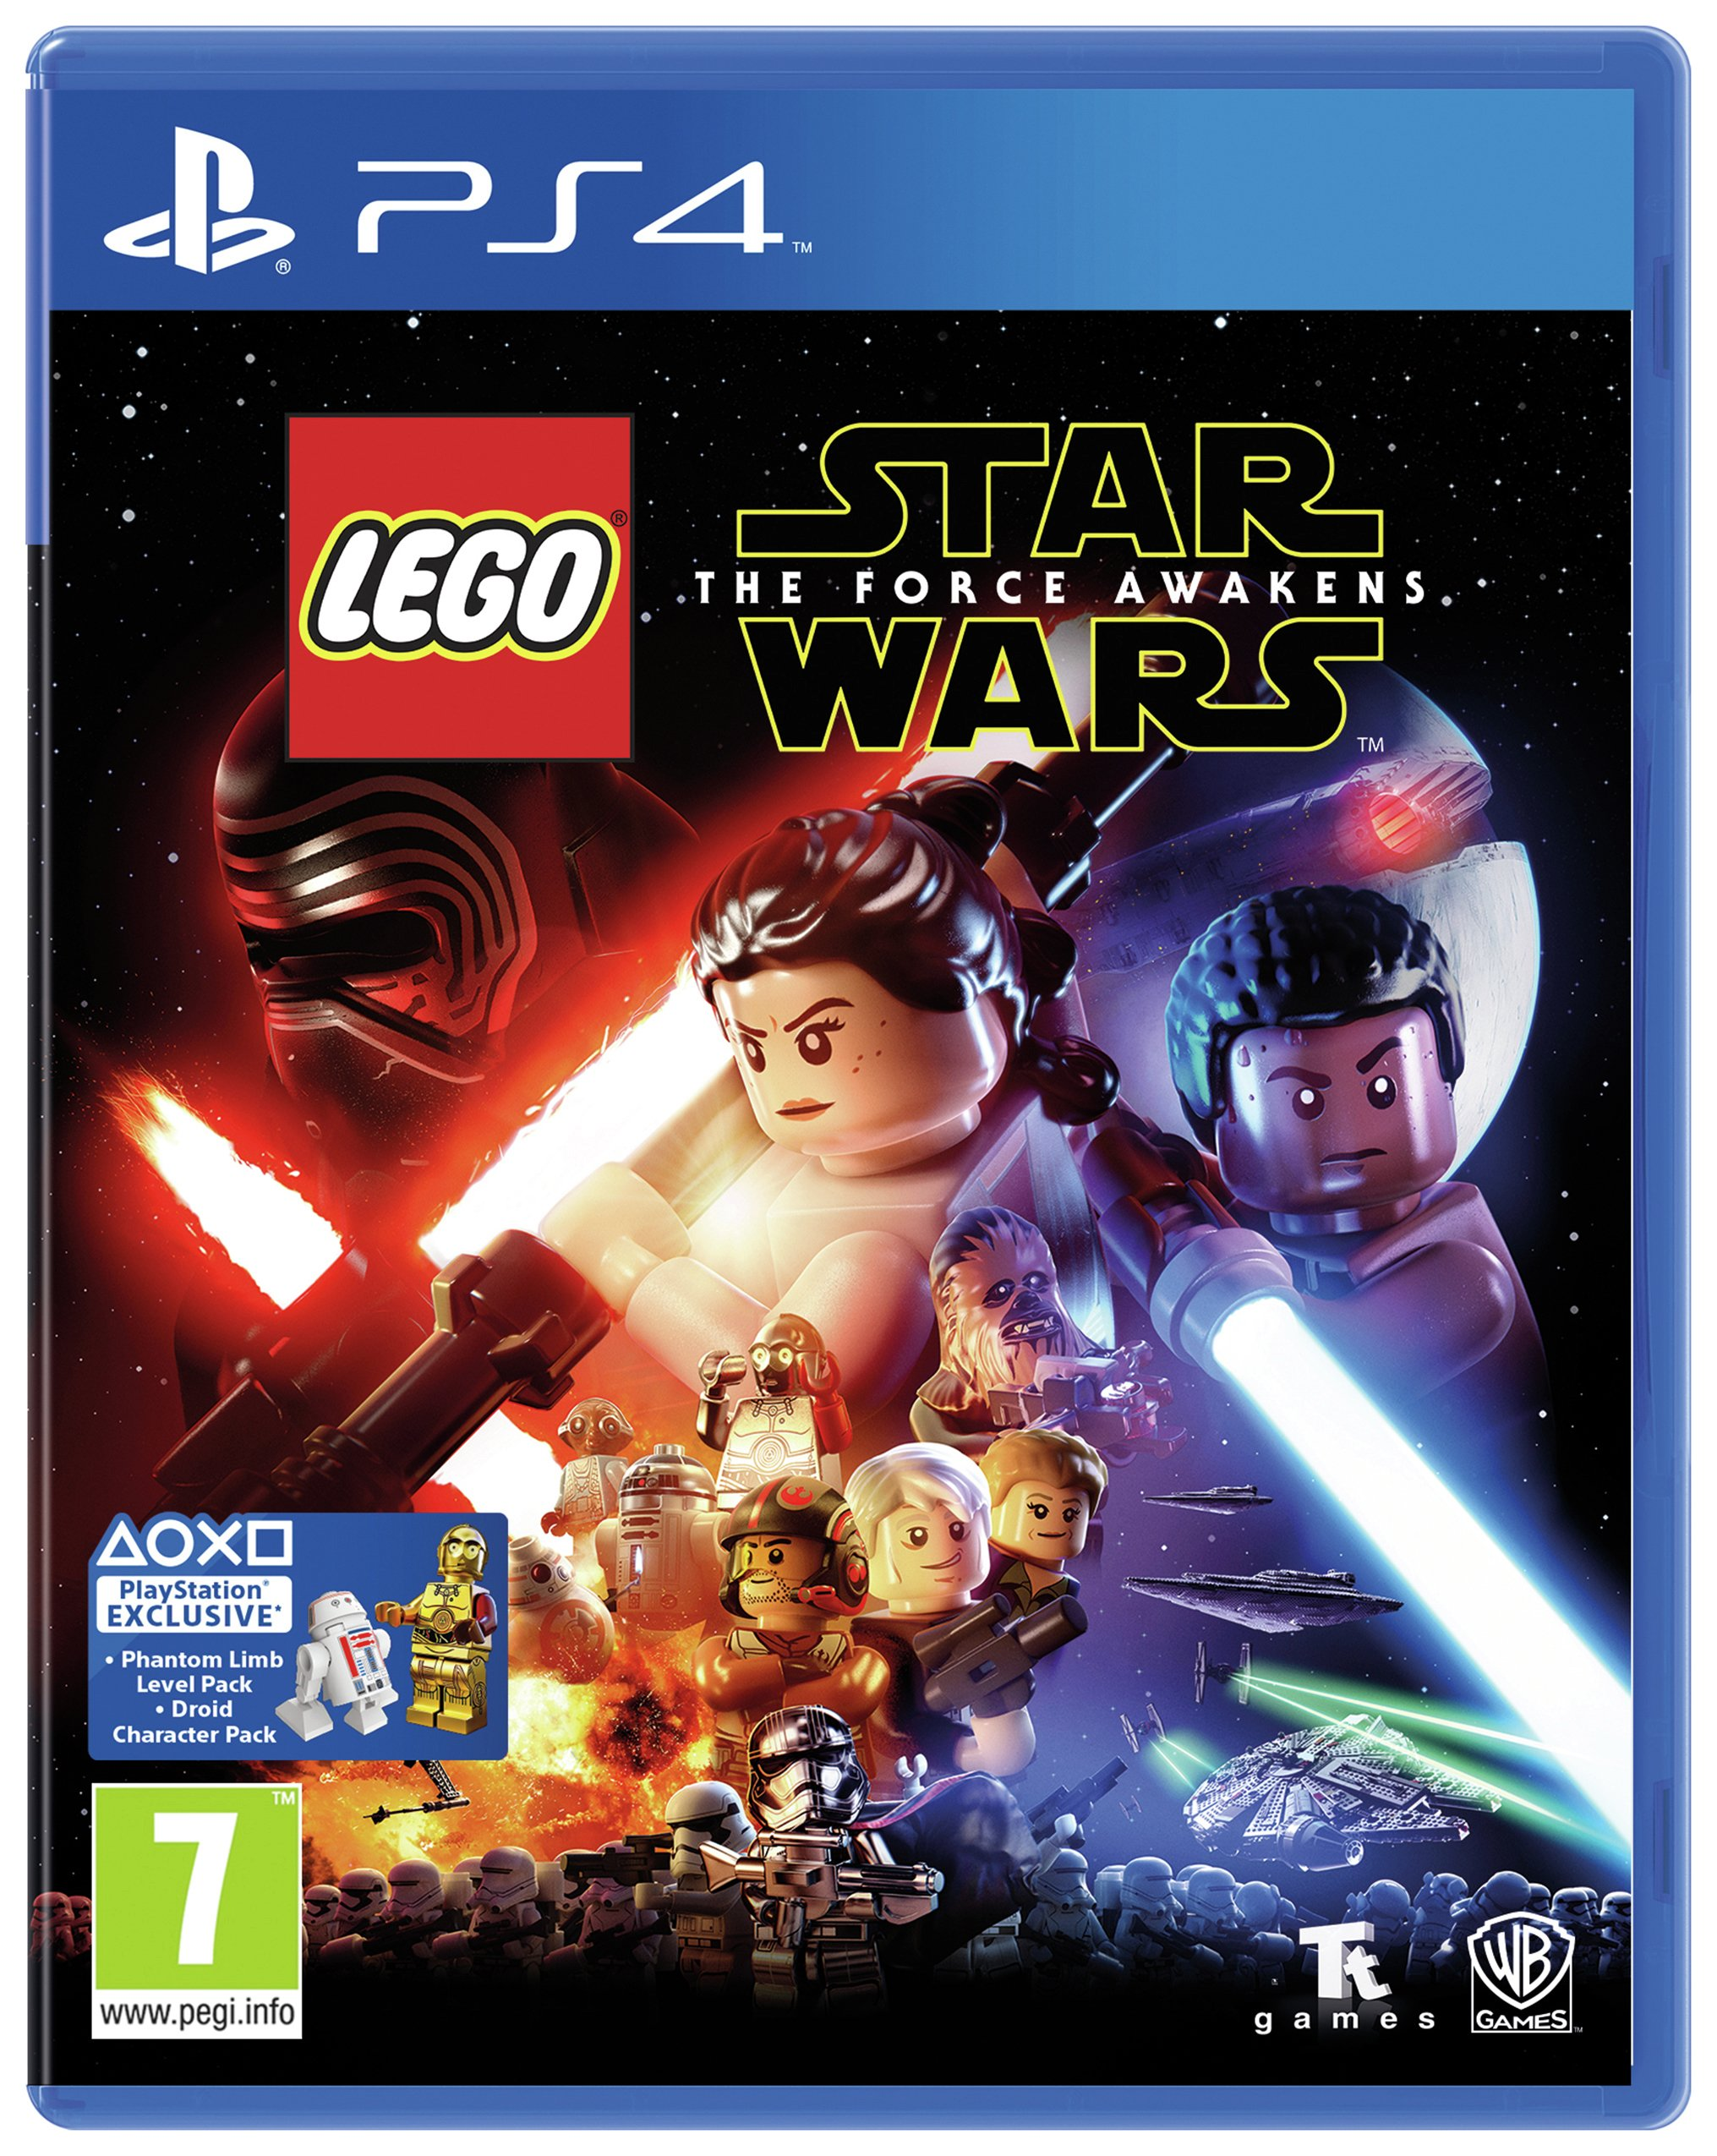 Buy Lego Star Wars: The Force Awakens PS4 Game   PS4 games   Argos